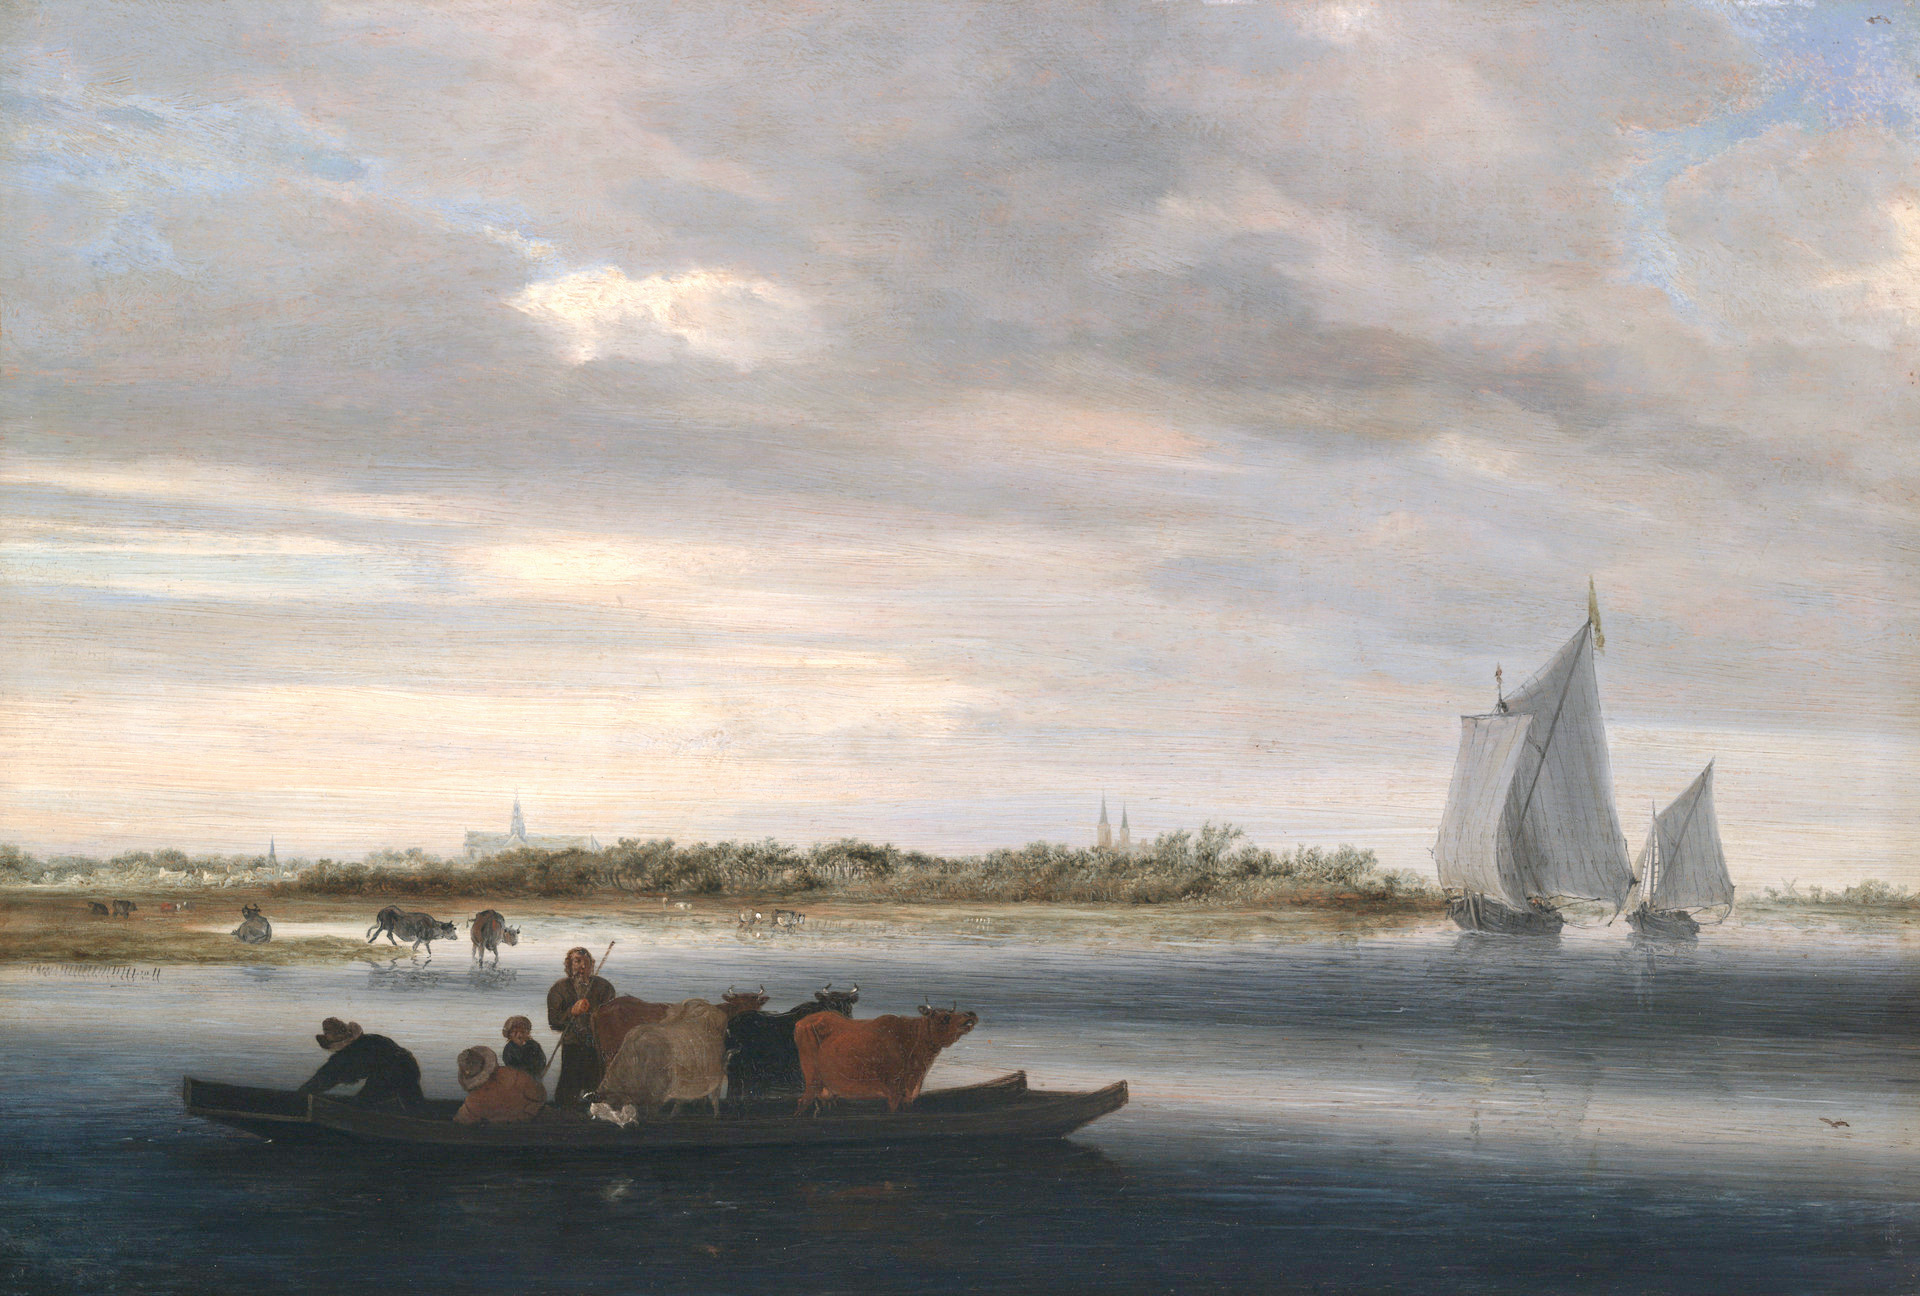 Salomon van Ruysdael – Yale University Art Gallery 1980.12.33. Title: View of Alkmaar. Date: c. 1650. Materials: oil on panel.  Dimensions: 36 x 52 cm. Nr.: 1980.12.33. Source: http://artgallery.yale.edu/collections/objects/24368. I have changed the light and contrast of the original photo.